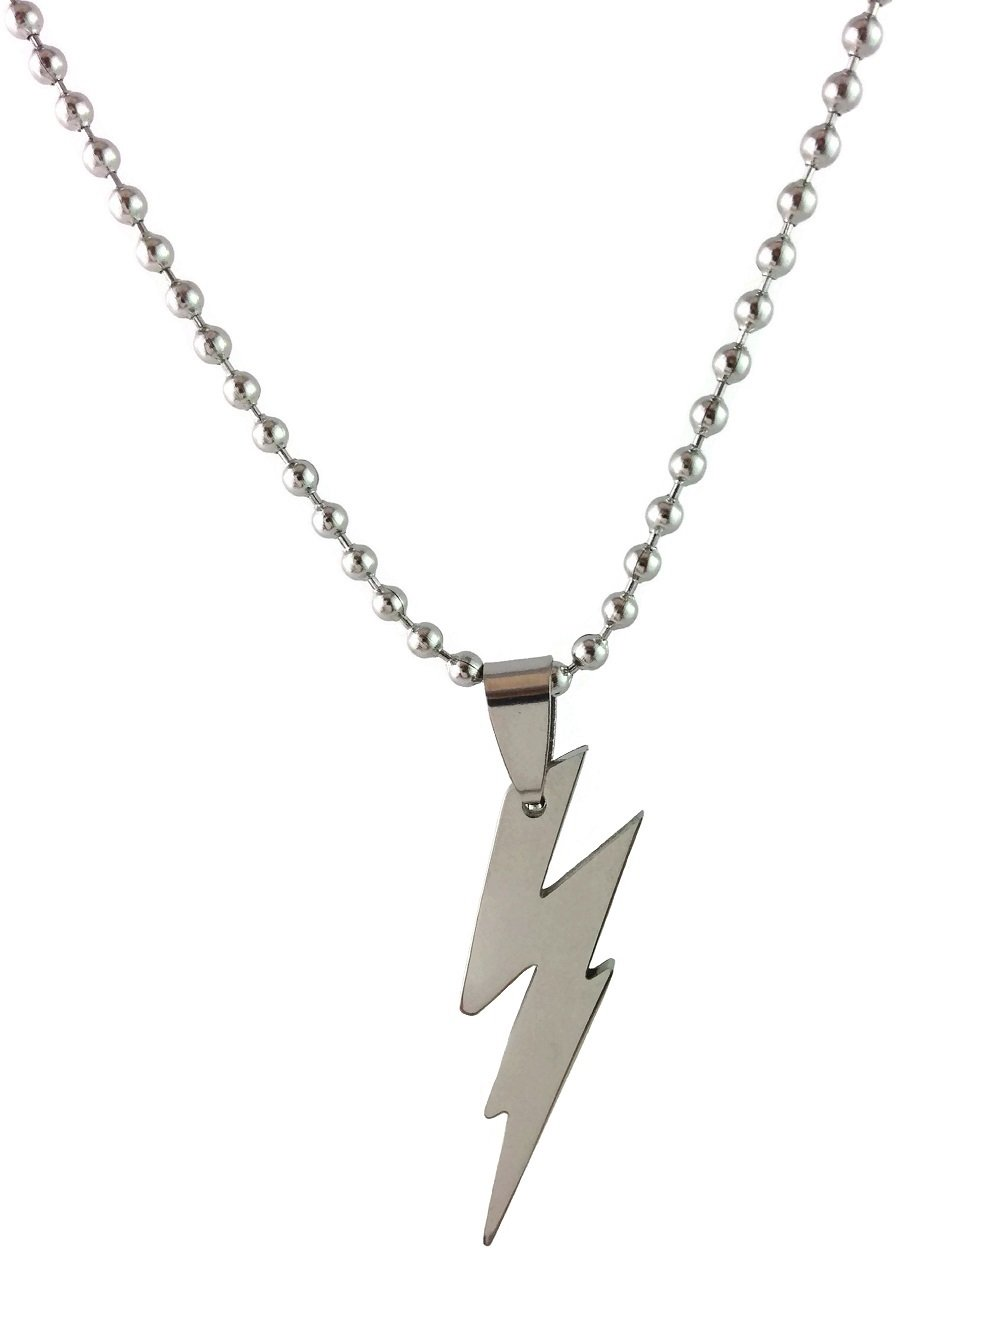 Dastan Stainless Steel Flash Necklace Flash Lightning Bolt Pendant Charm on Beaded Chain- The Flash Necklace for Boys, Girls, Men and Women